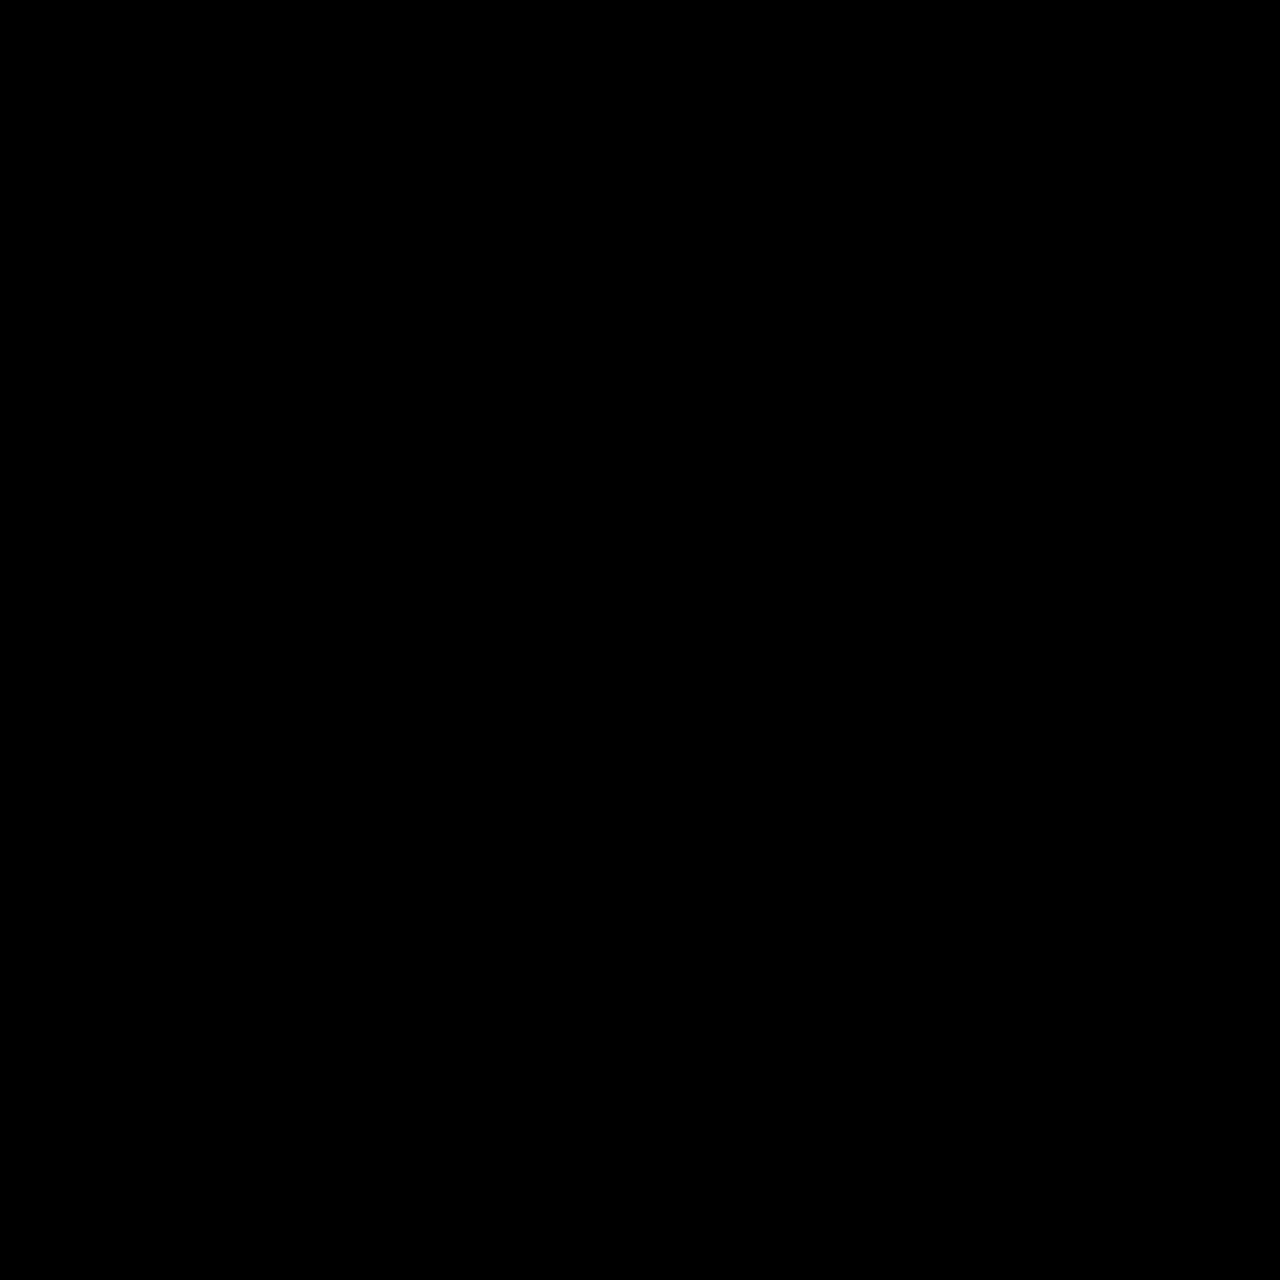 Gustav Stickley Mission Oak Hall Settee Sofa Bench # 205 c ...